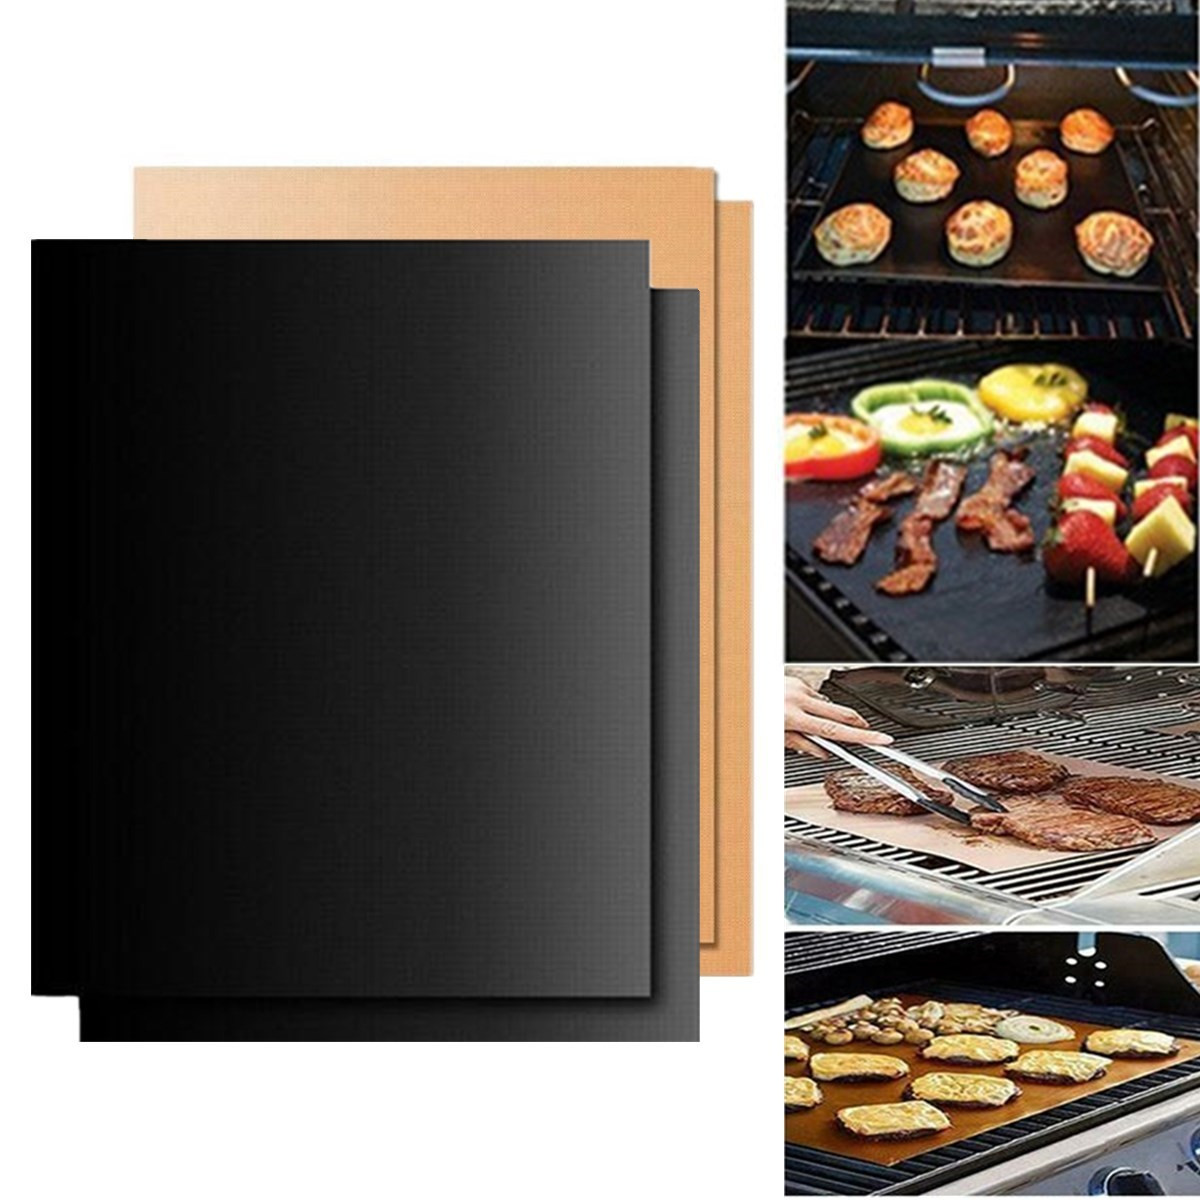 2PCS 33x40cm Outdoor BBQ Barbecue Reusable Resistant Non-stick Baking Grill Mats